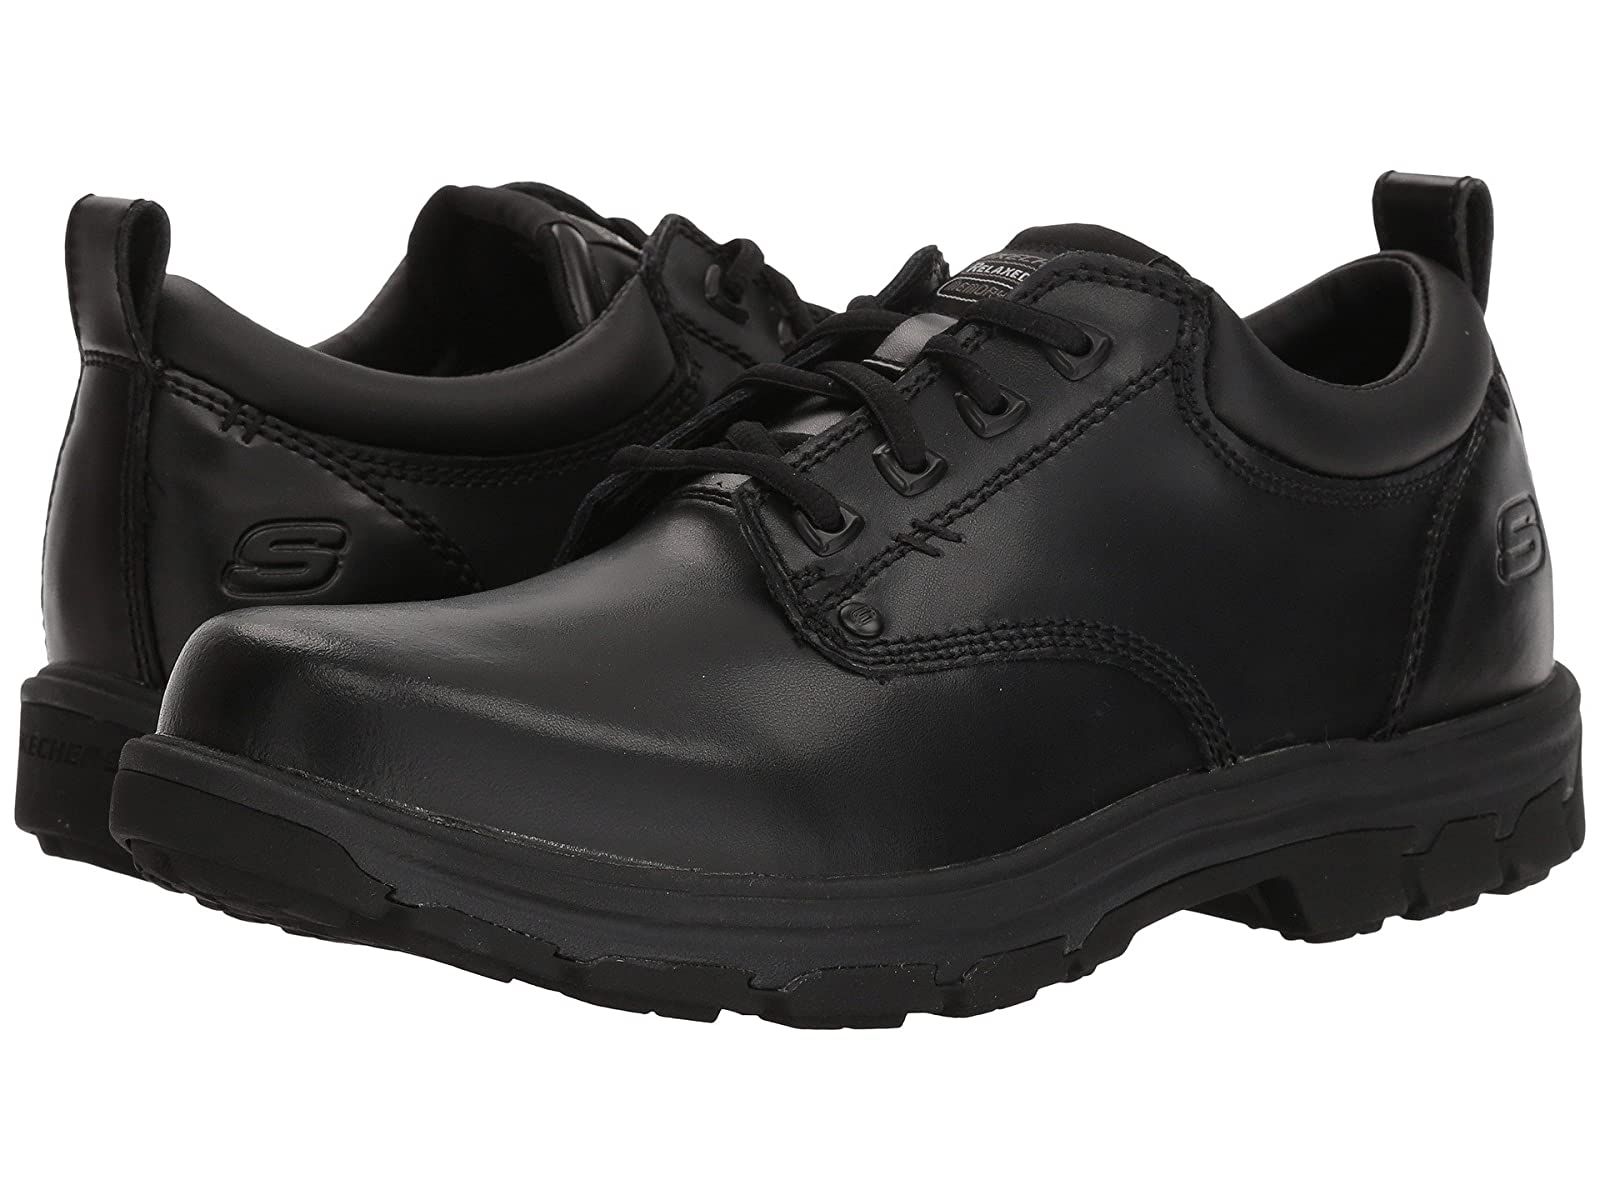 SKECHERS Relaxed Fit®: Segment - RilarCheap and distinctive eye-catching shoes